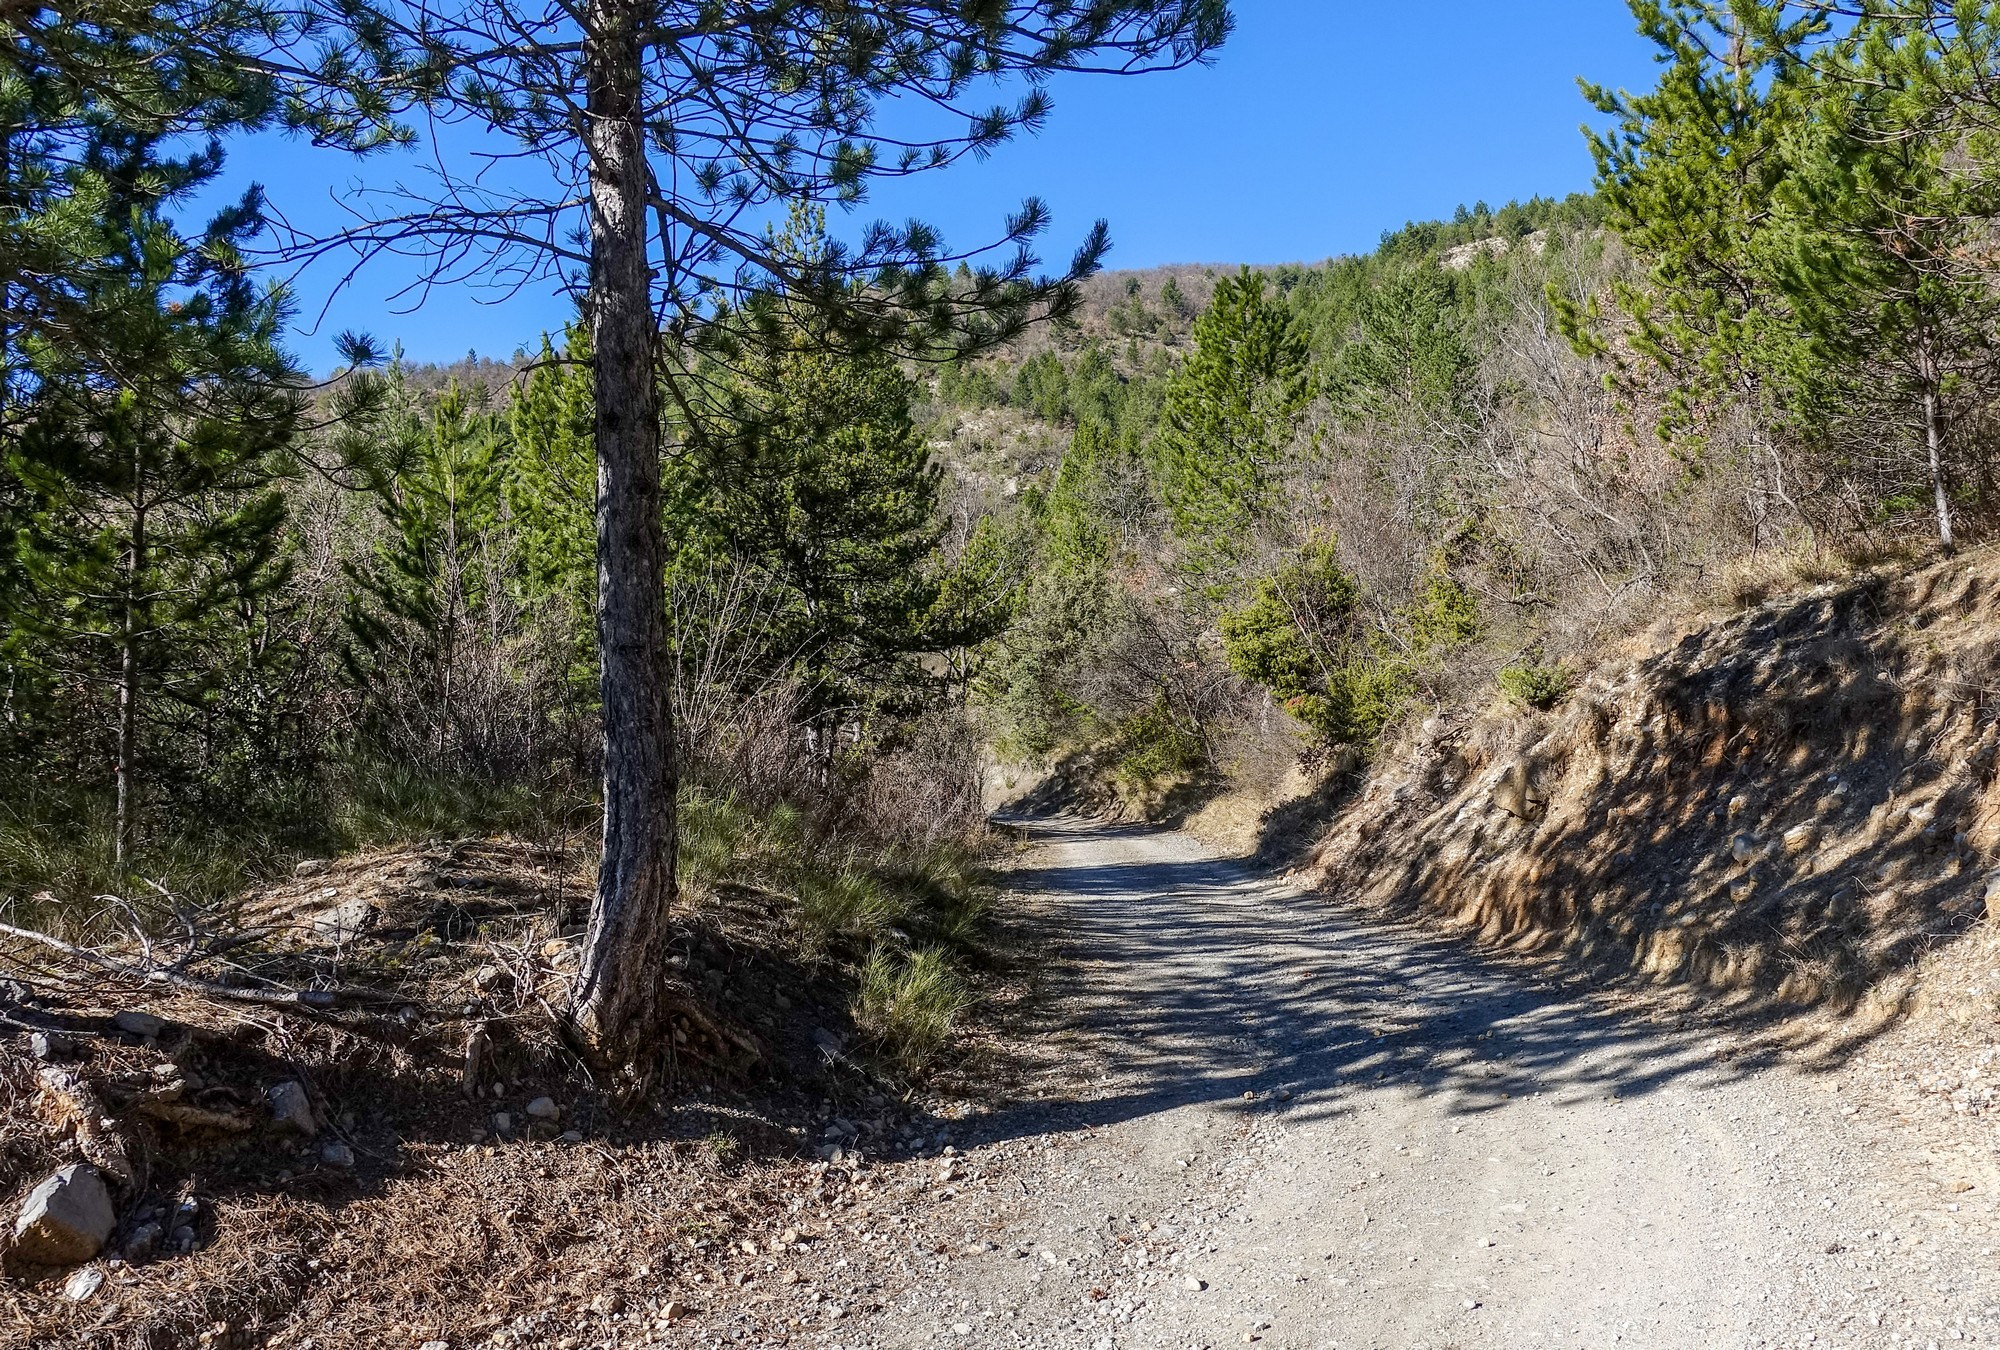 Gravel path out of Puget-Rostang